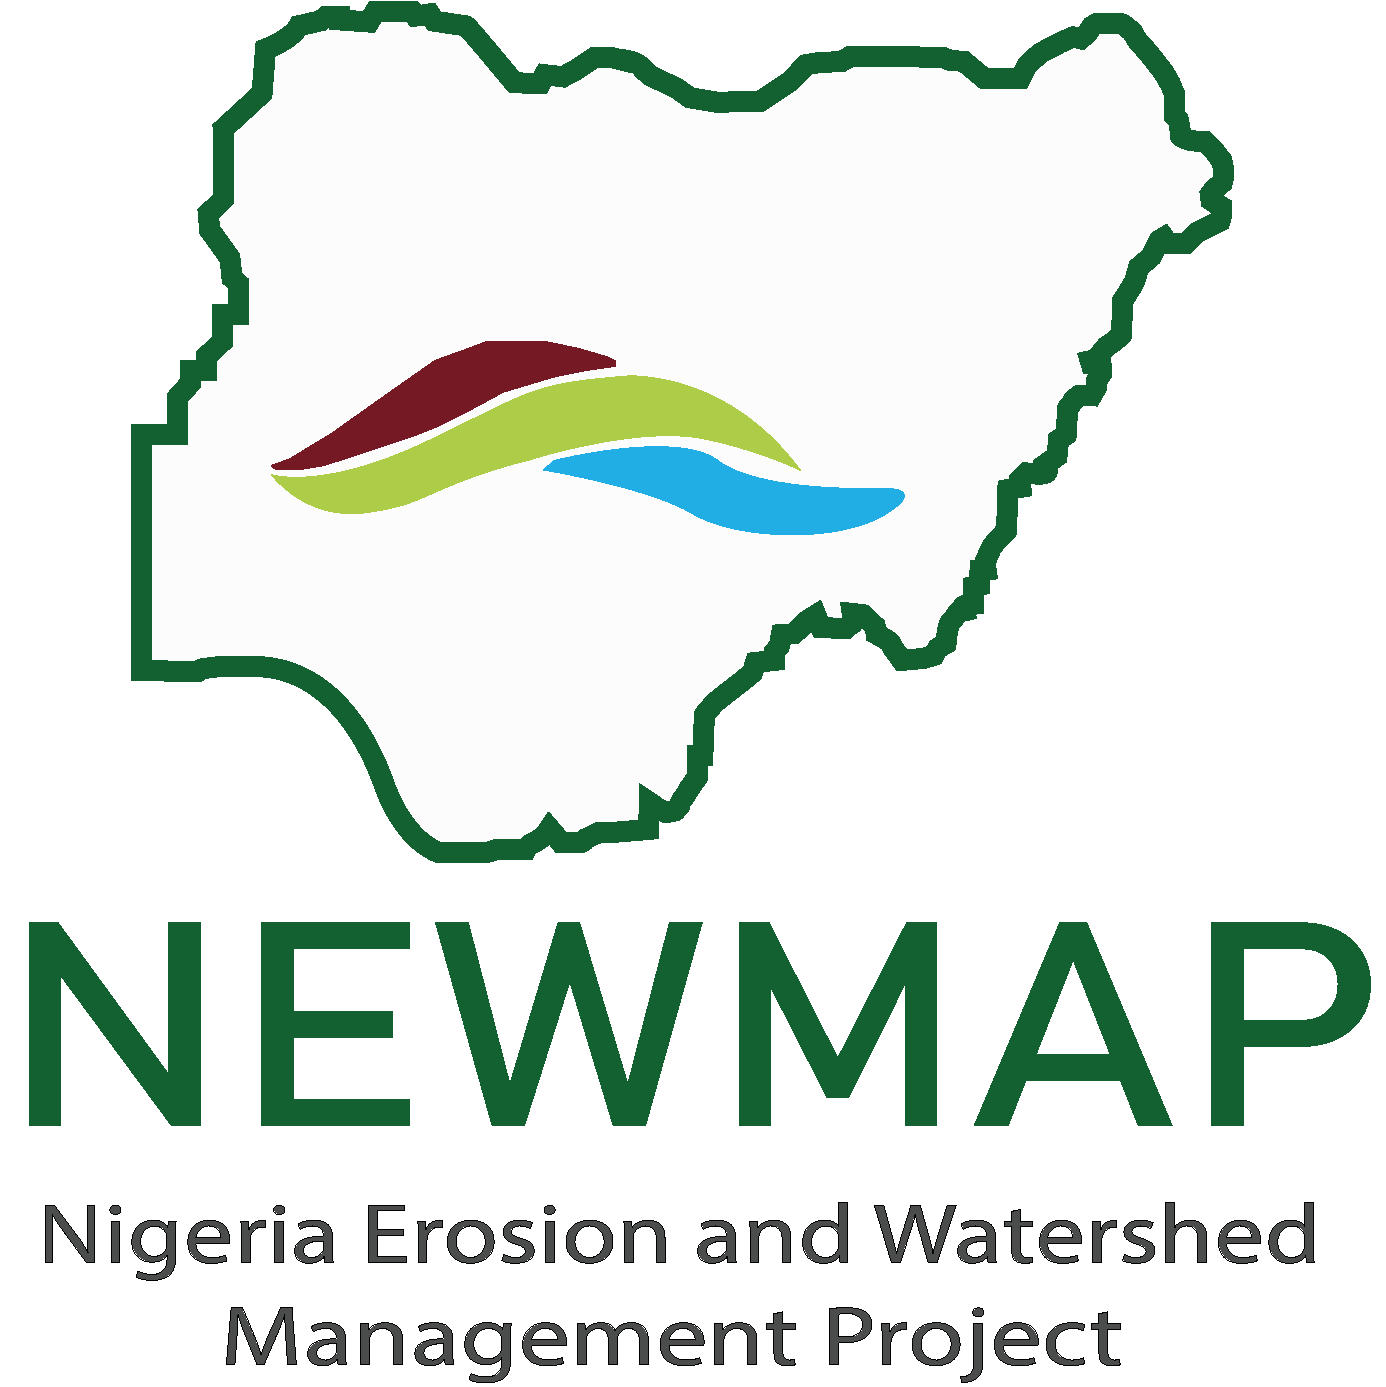 NEWMAP | Nigeria Erosion and Watershed Management Project